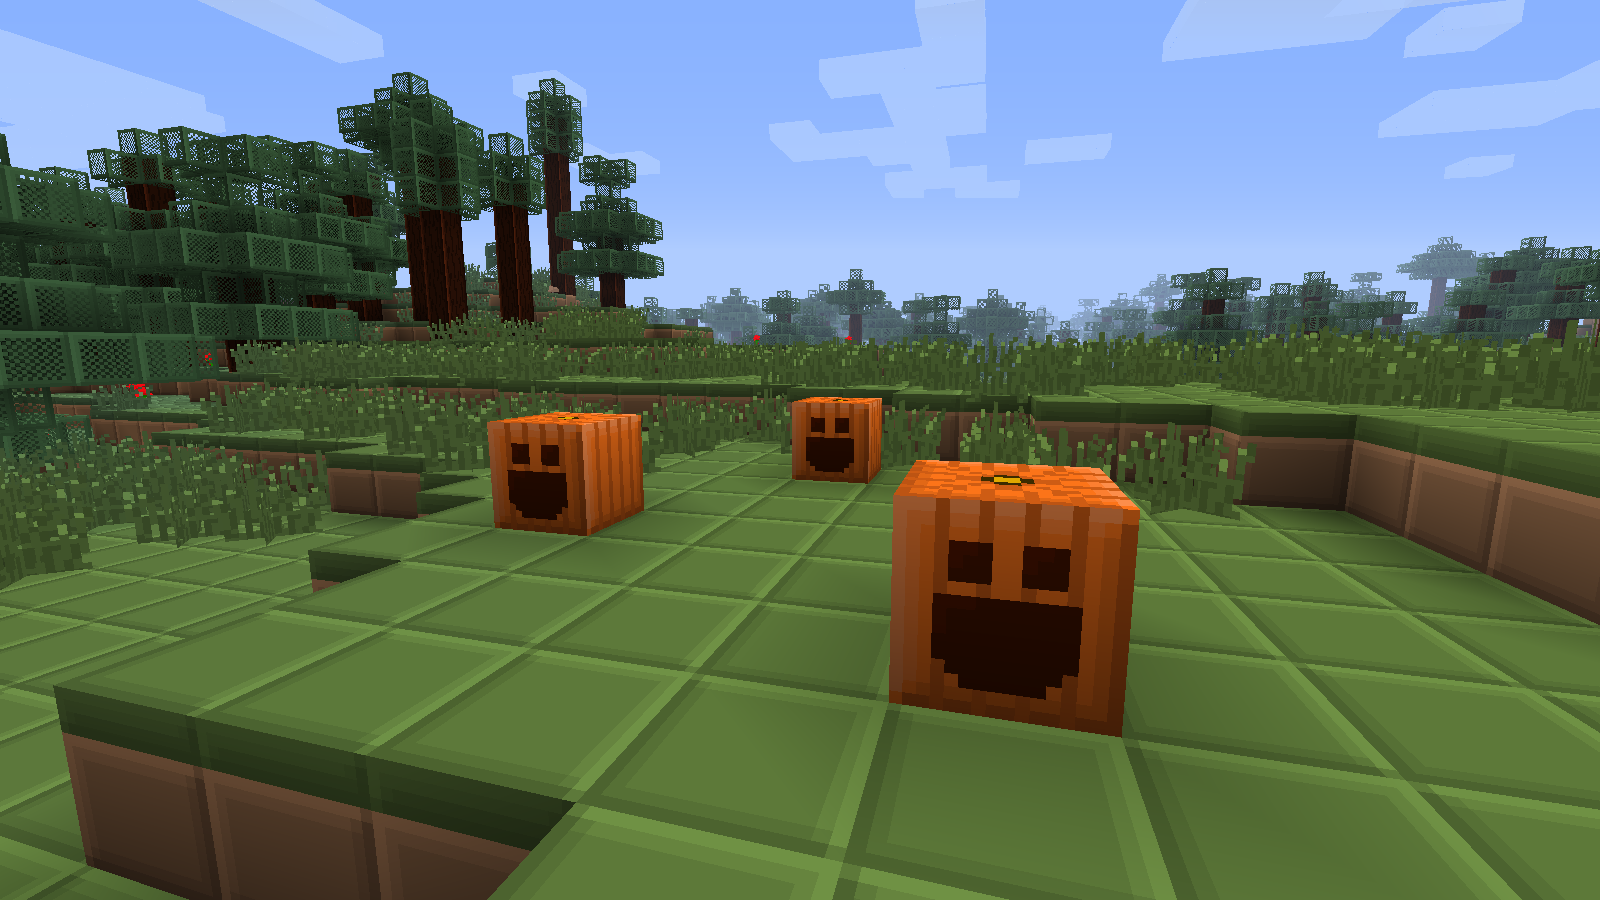 Boxcraft-texture-pack-1.png